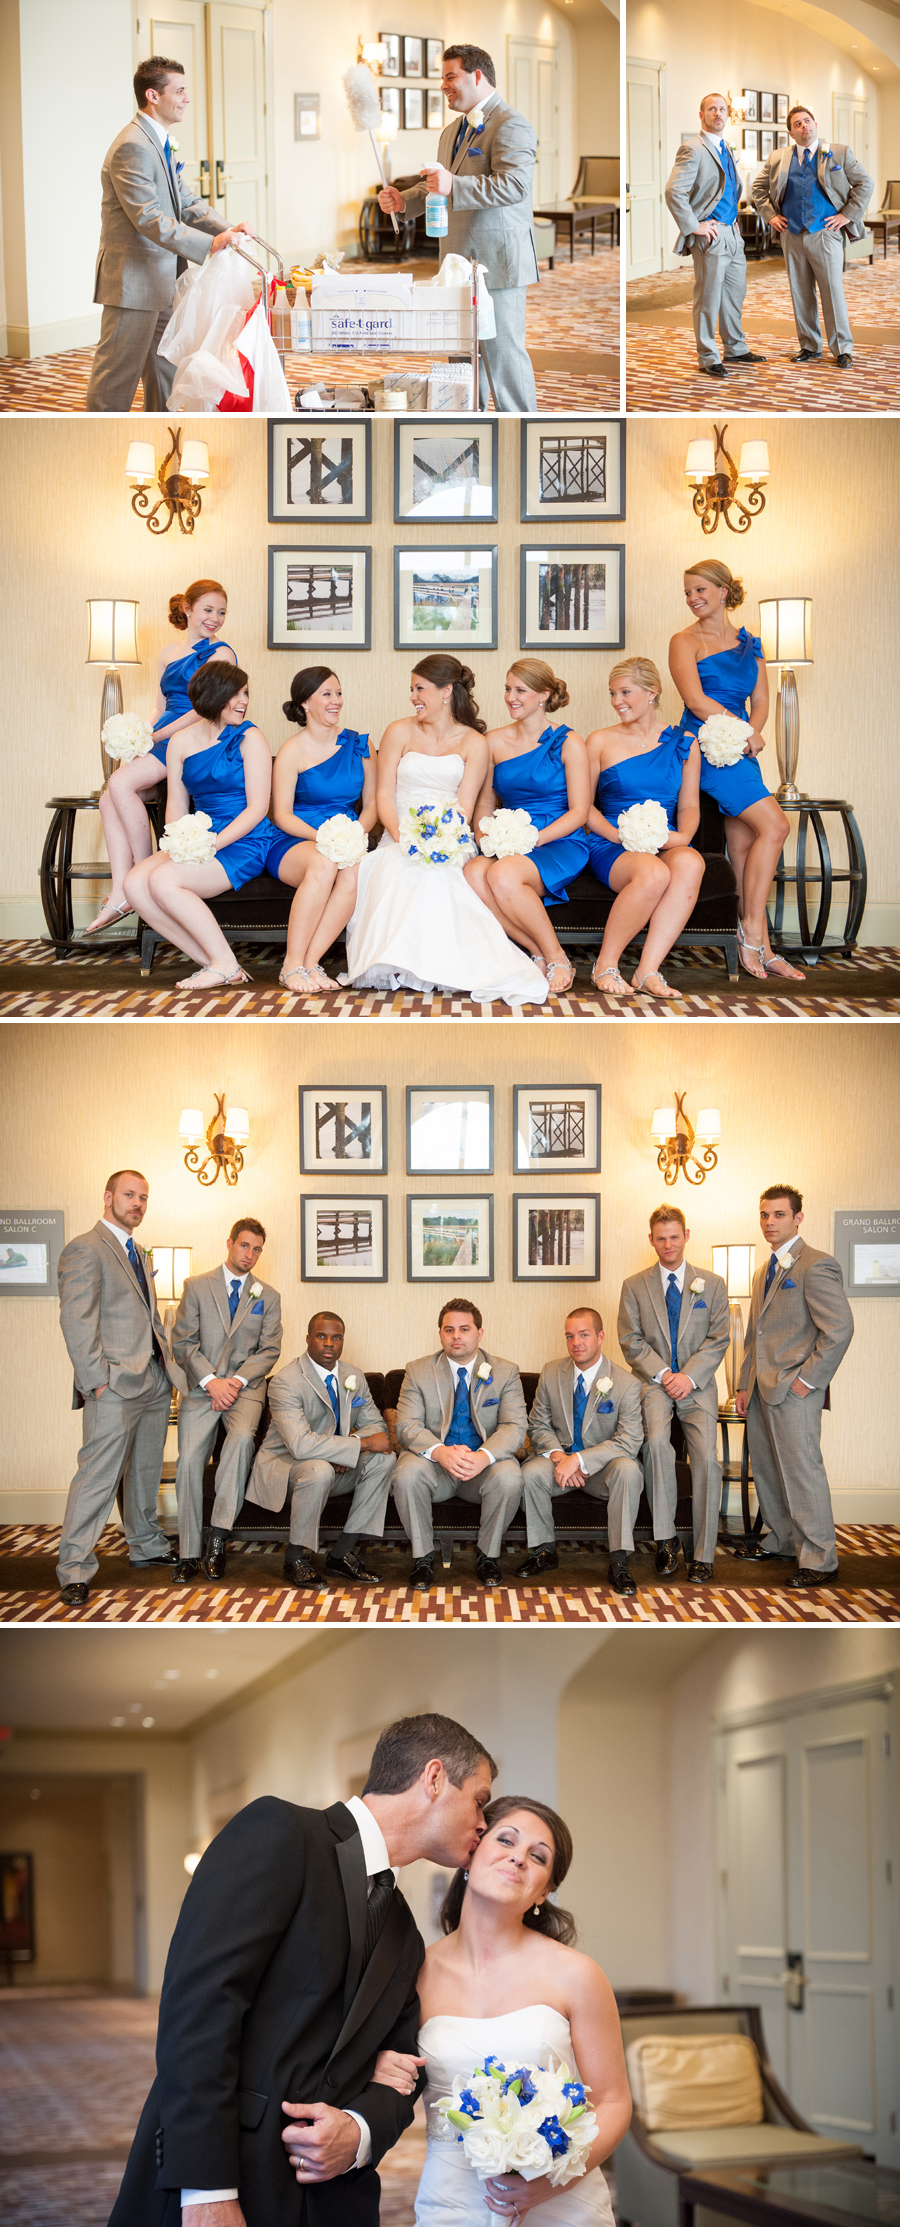 Lauren and Brandon wedding at the Westin Savannah, GA